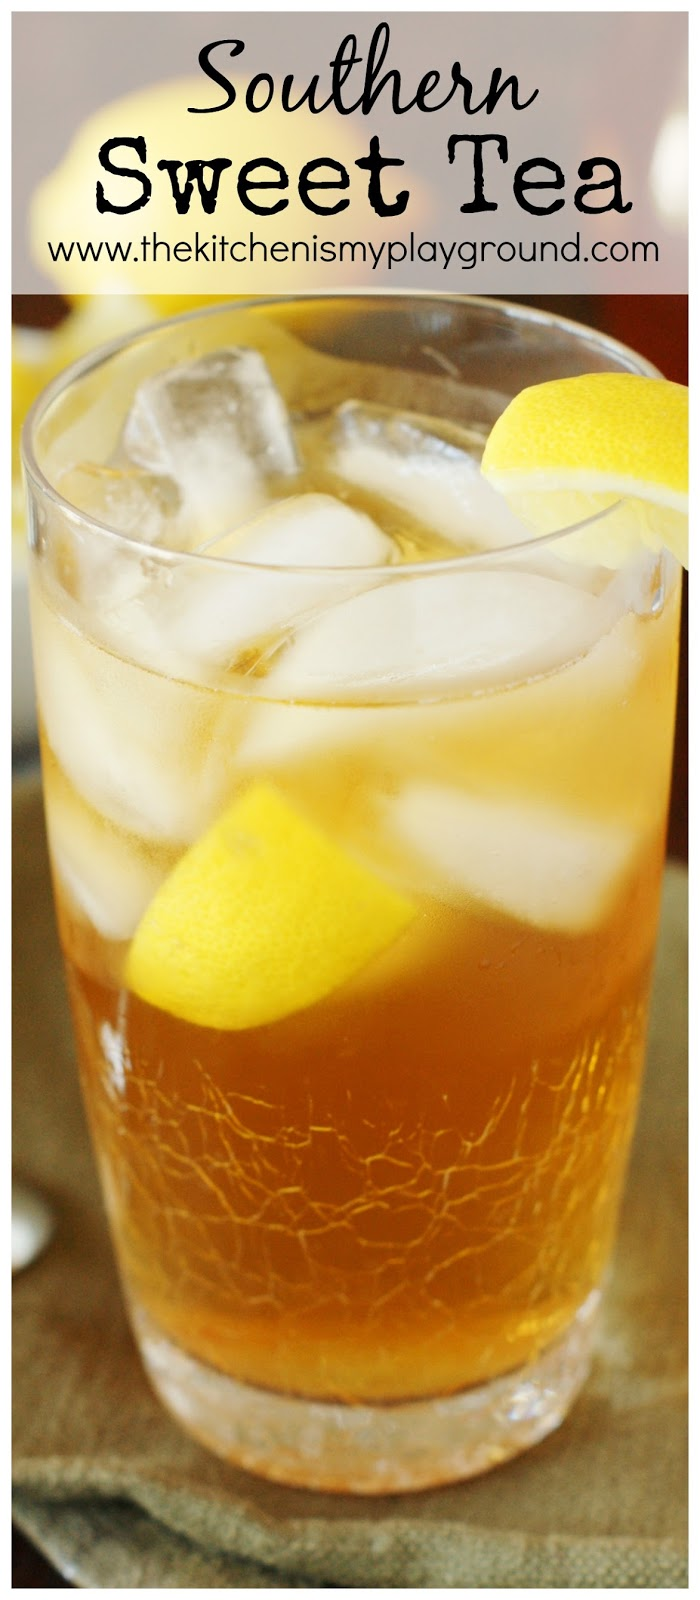 Southern Sweet Tea - The Kitchen is My Playground